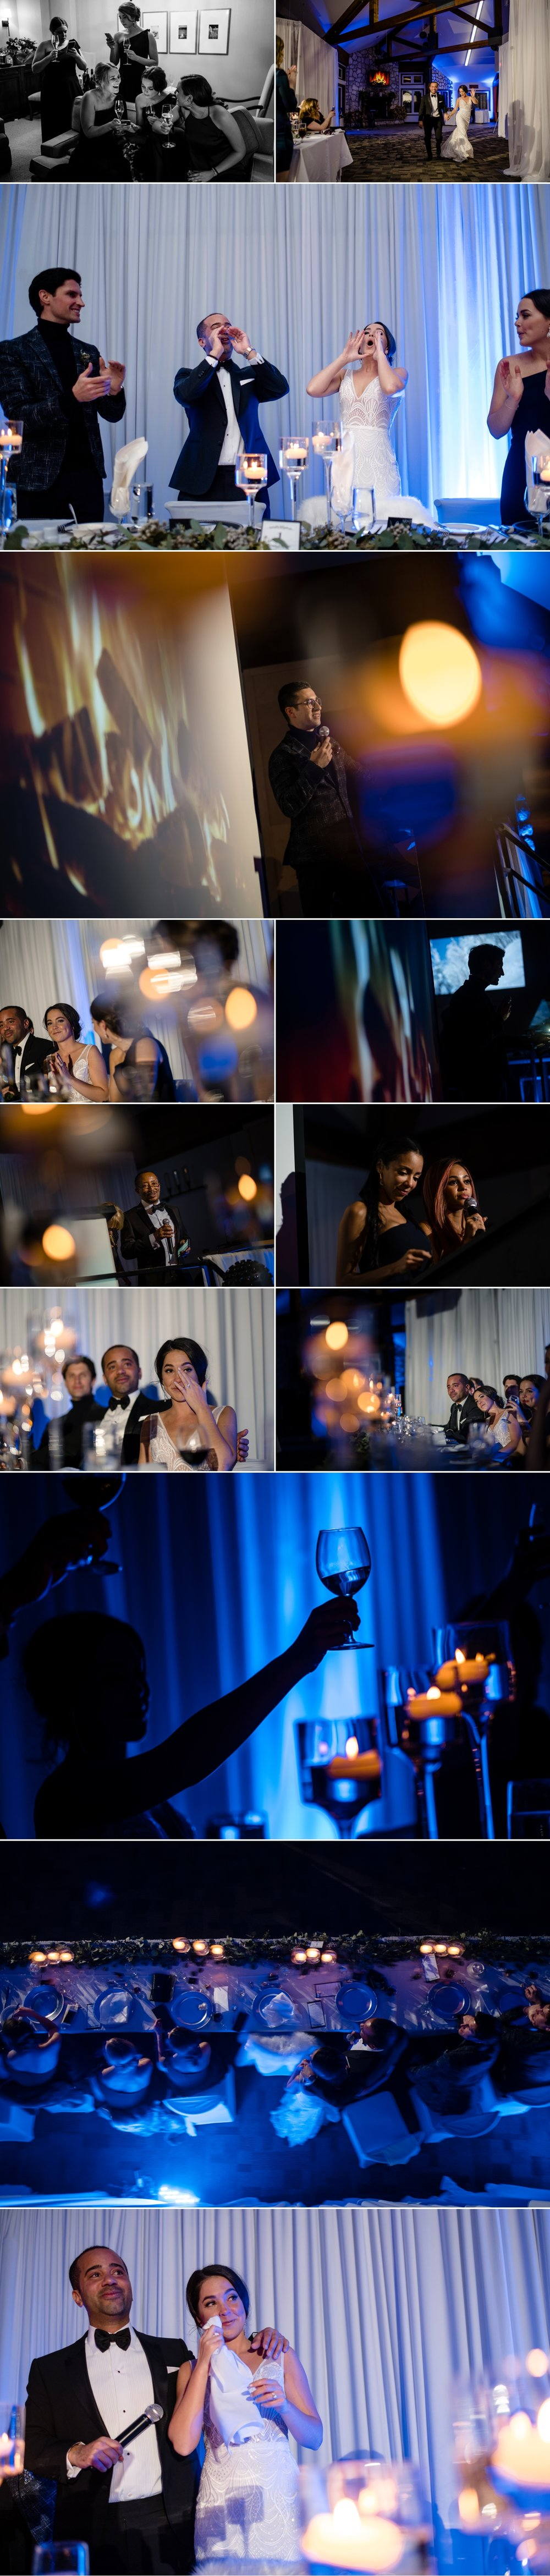 candid moments during a winter wedding reception at the grand manitou in mont tremblant quebec